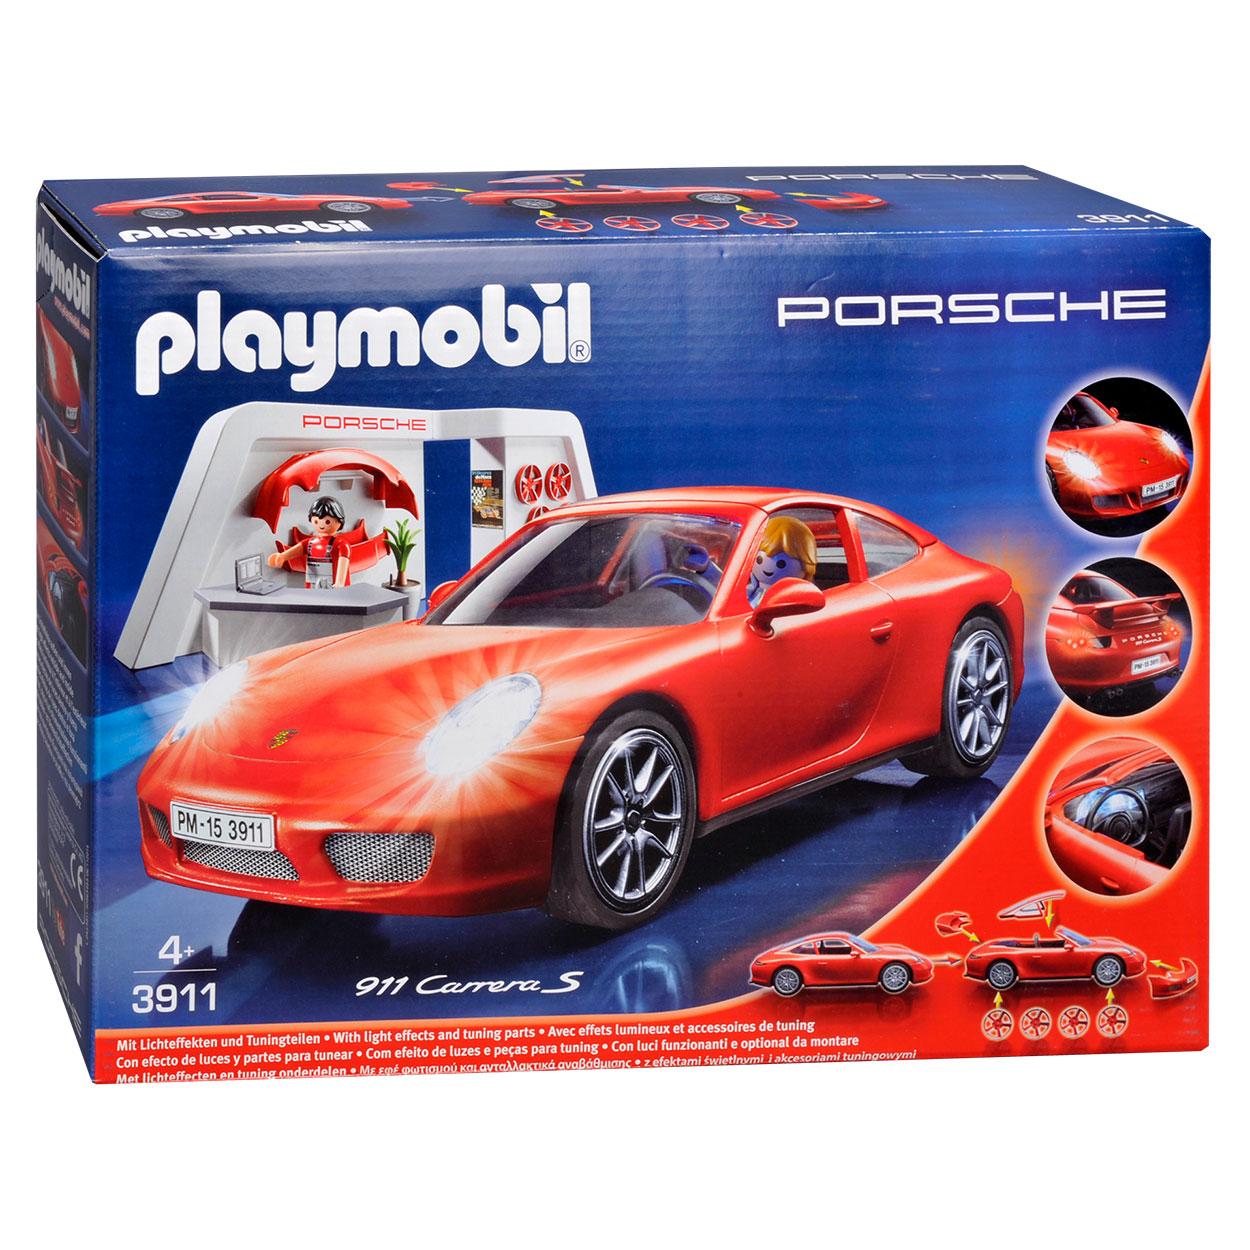 playmobil 3911 porsche 911 carrera s online kopen. Black Bedroom Furniture Sets. Home Design Ideas